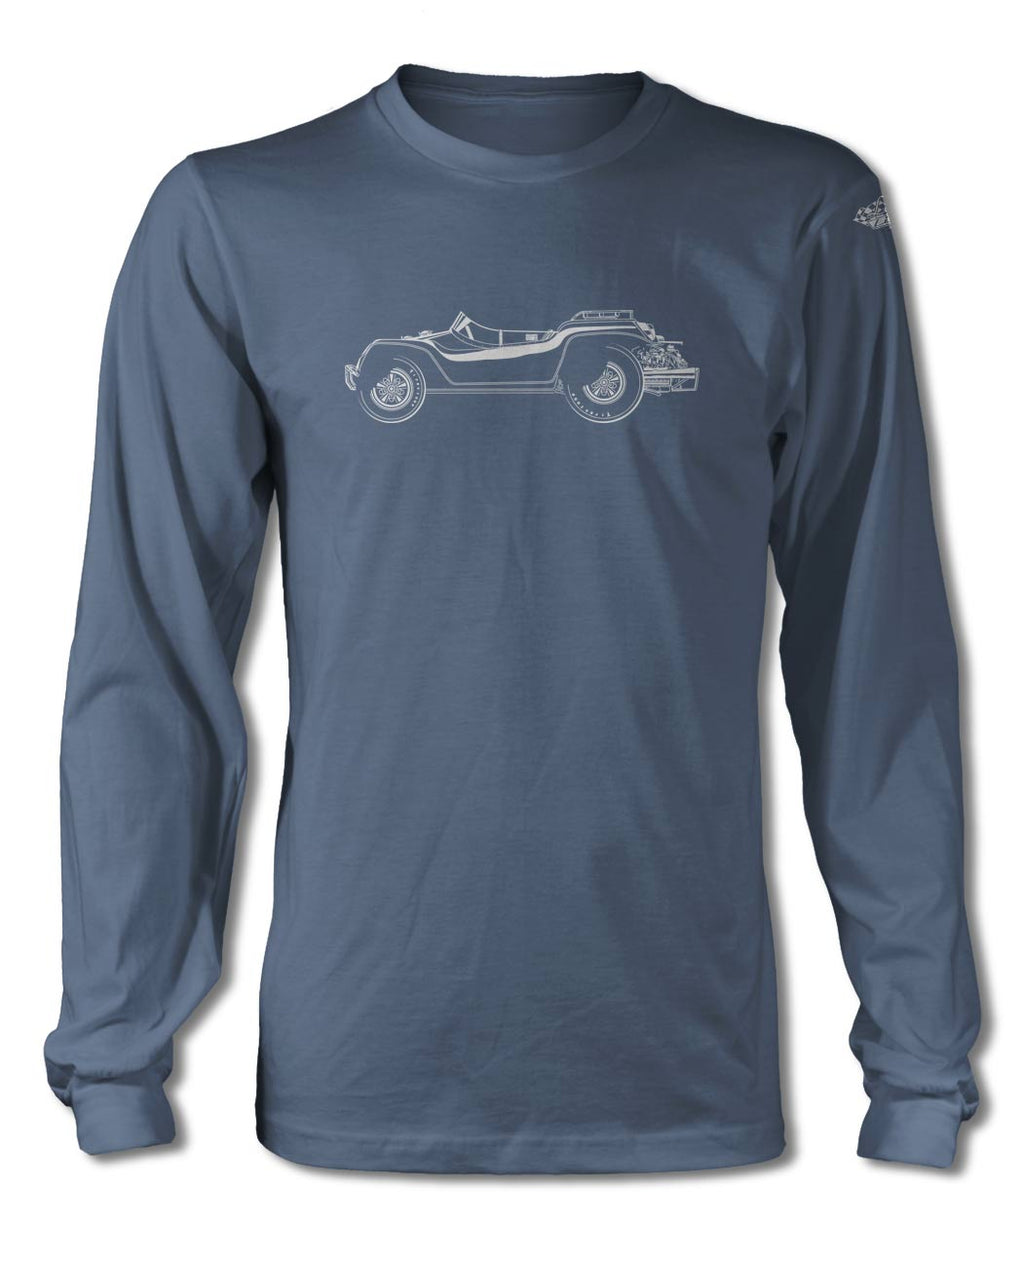 1968 Meyers Manx Steve McQueen Dune Buggy 1968 T-Shirt - Long Sleeves - Side View